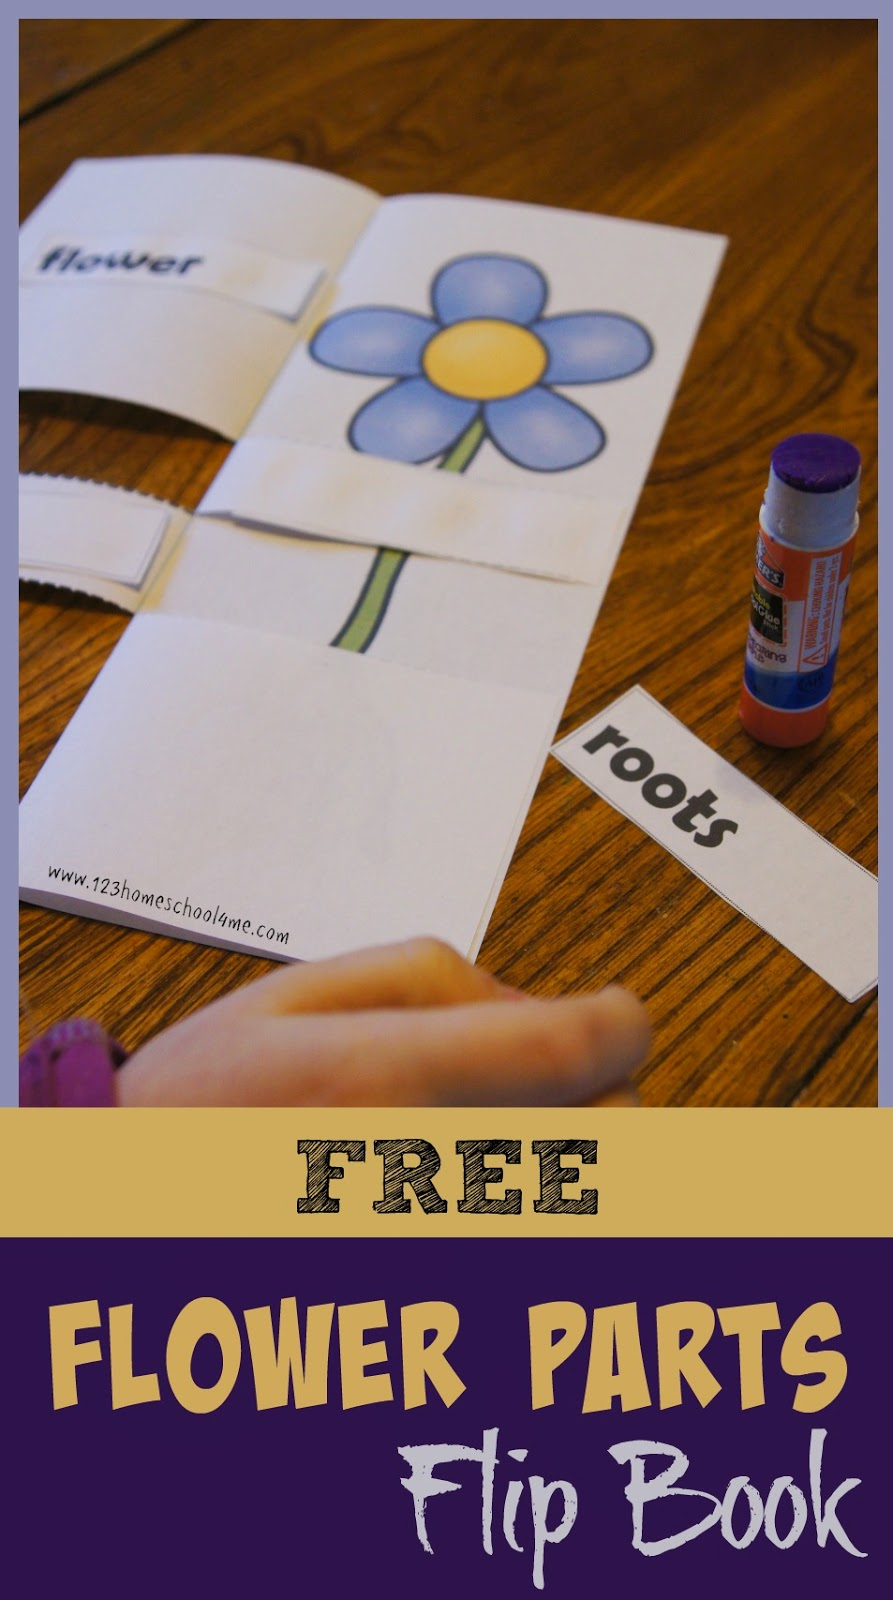 worksheet Parts Of A Flower Worksheet For Preschool parts of a flower printables and crafts flip book is free science printable for kids from preschool kindergarten